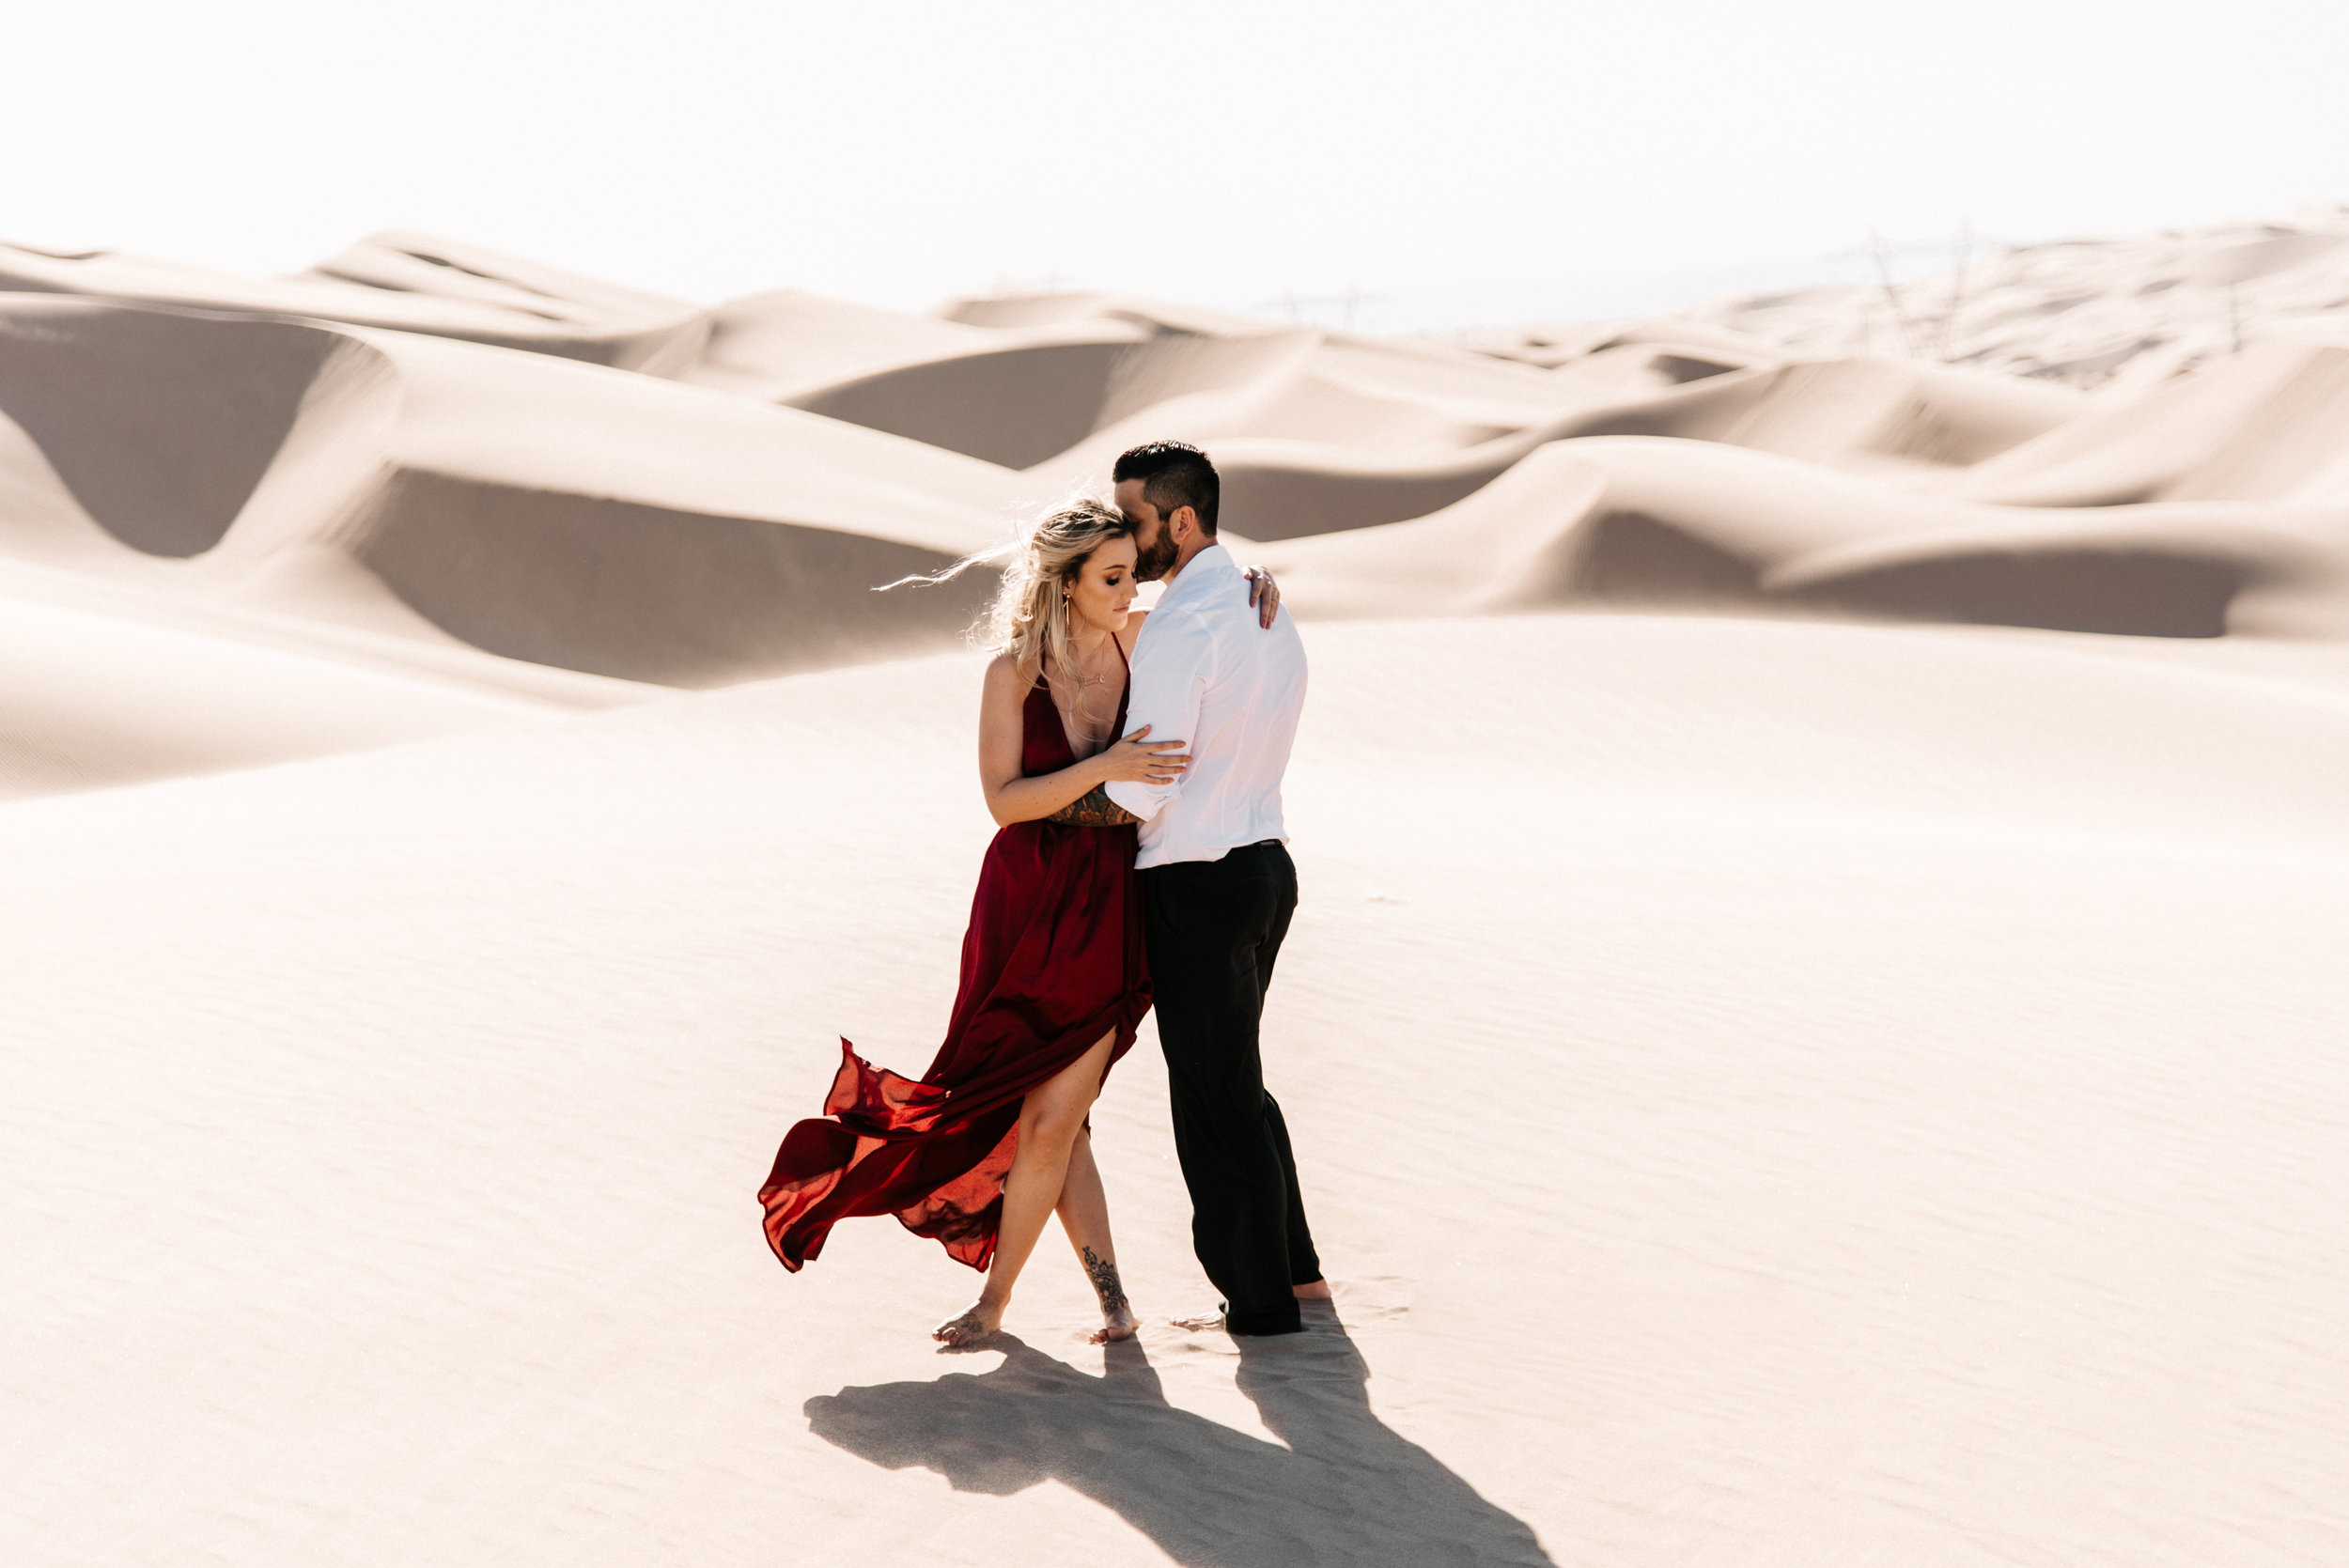 SamErica Studios - Modern San Diego Engagement Photographer - Adventure Engagement Session in Glamis Sand Dunes California-16.jpg